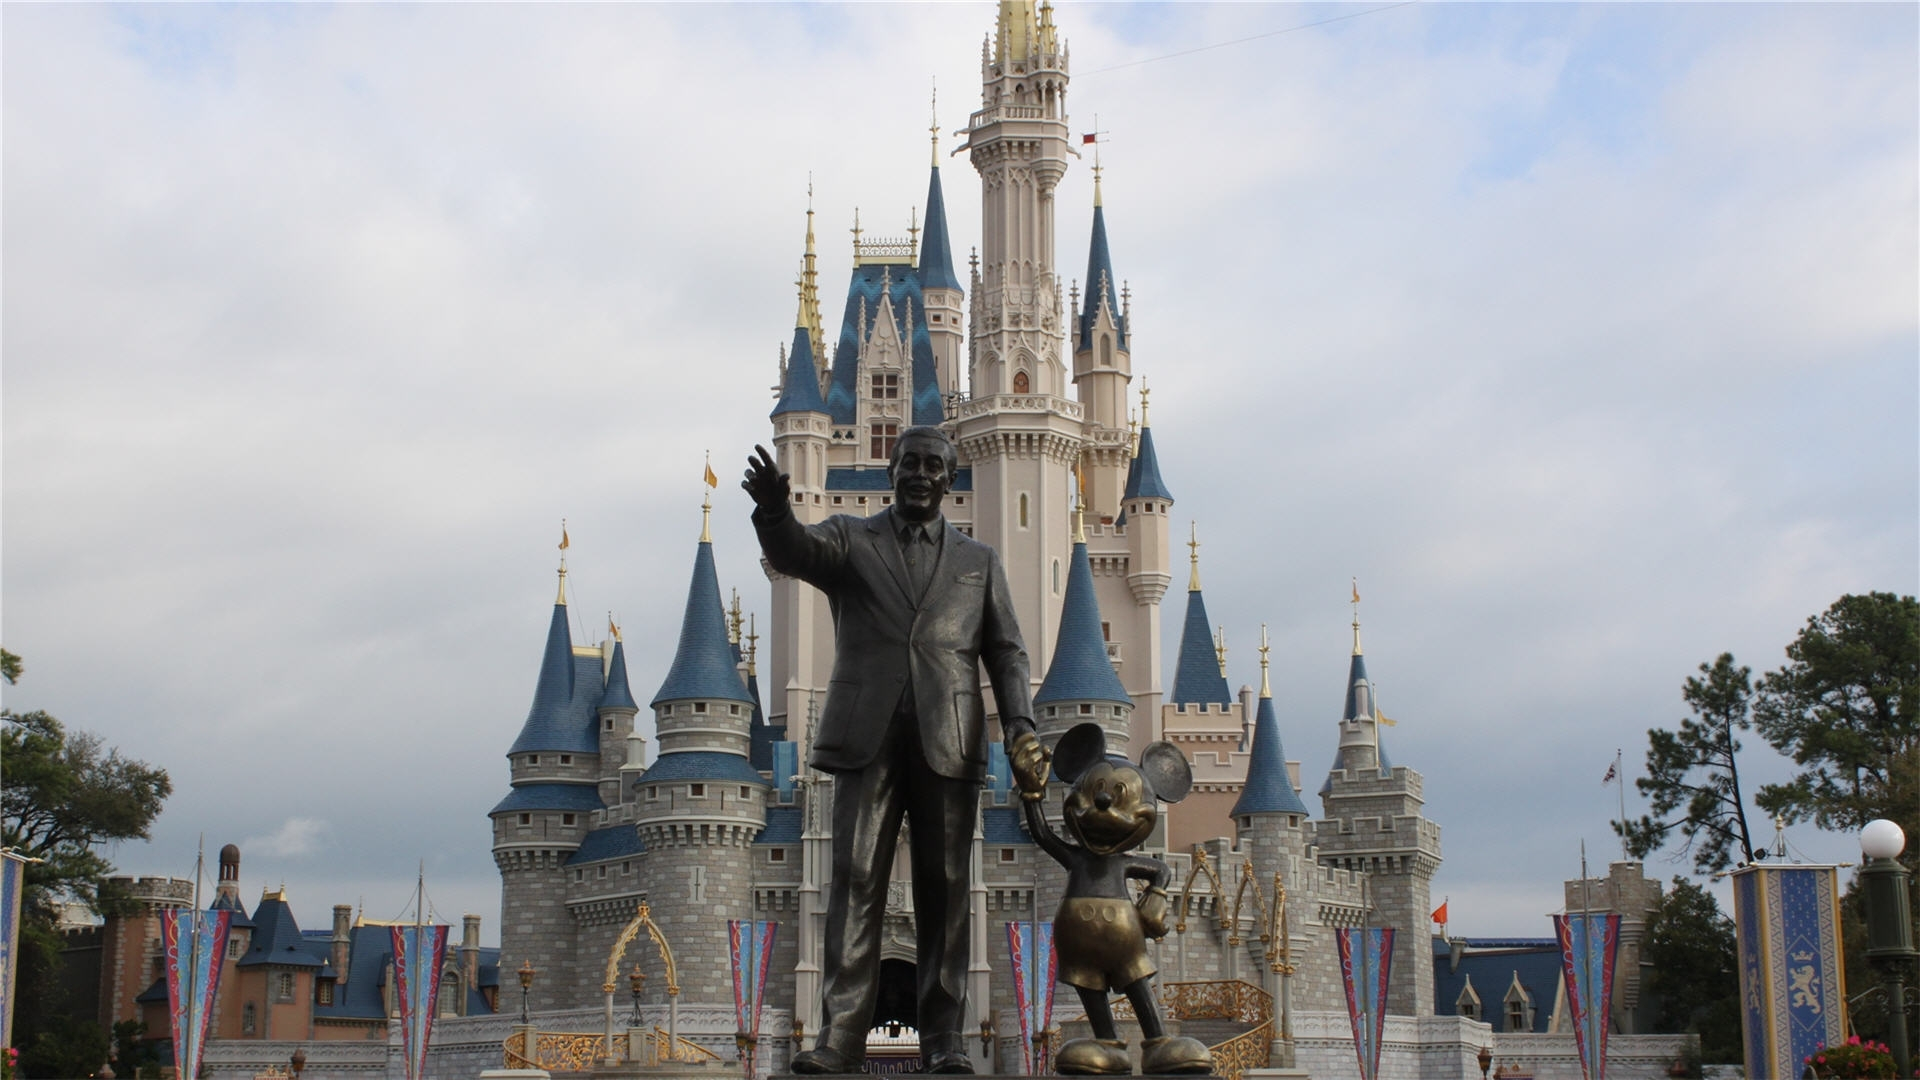 disney castle wallpapers hd | pixelstalk